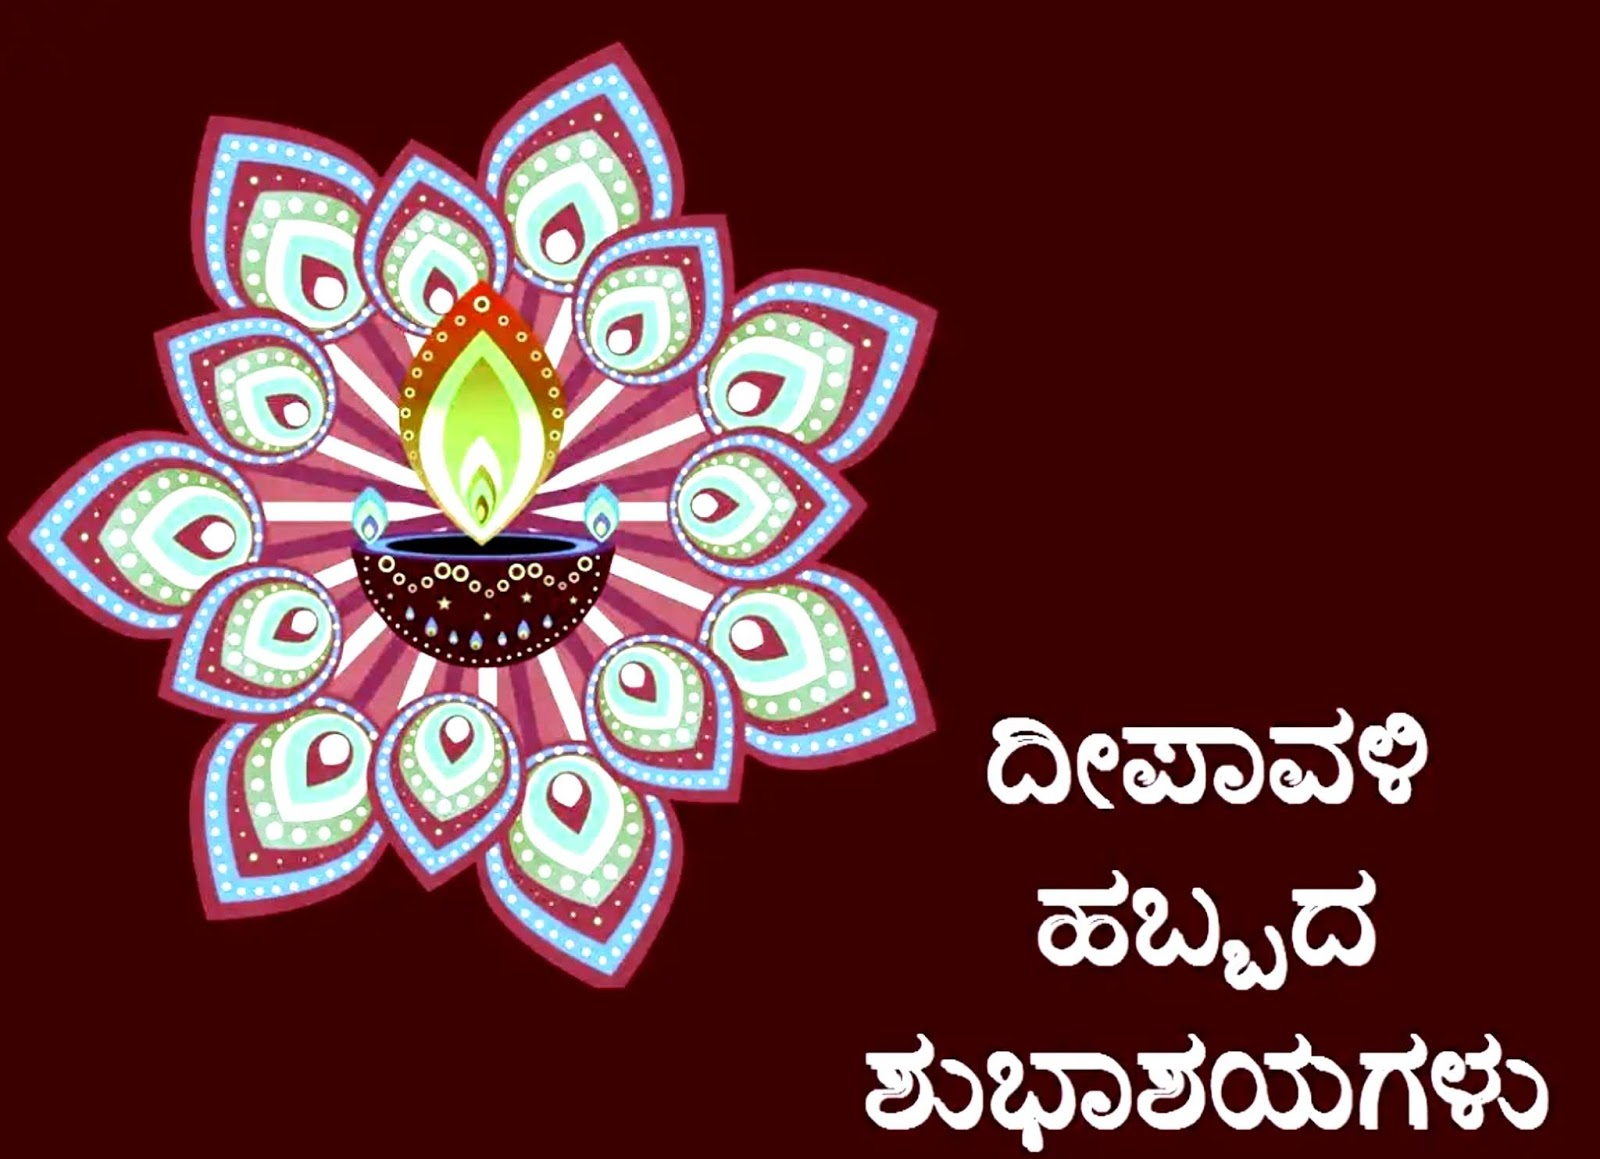 Happy Diwali Images In Kannada 2018 Font Text Language